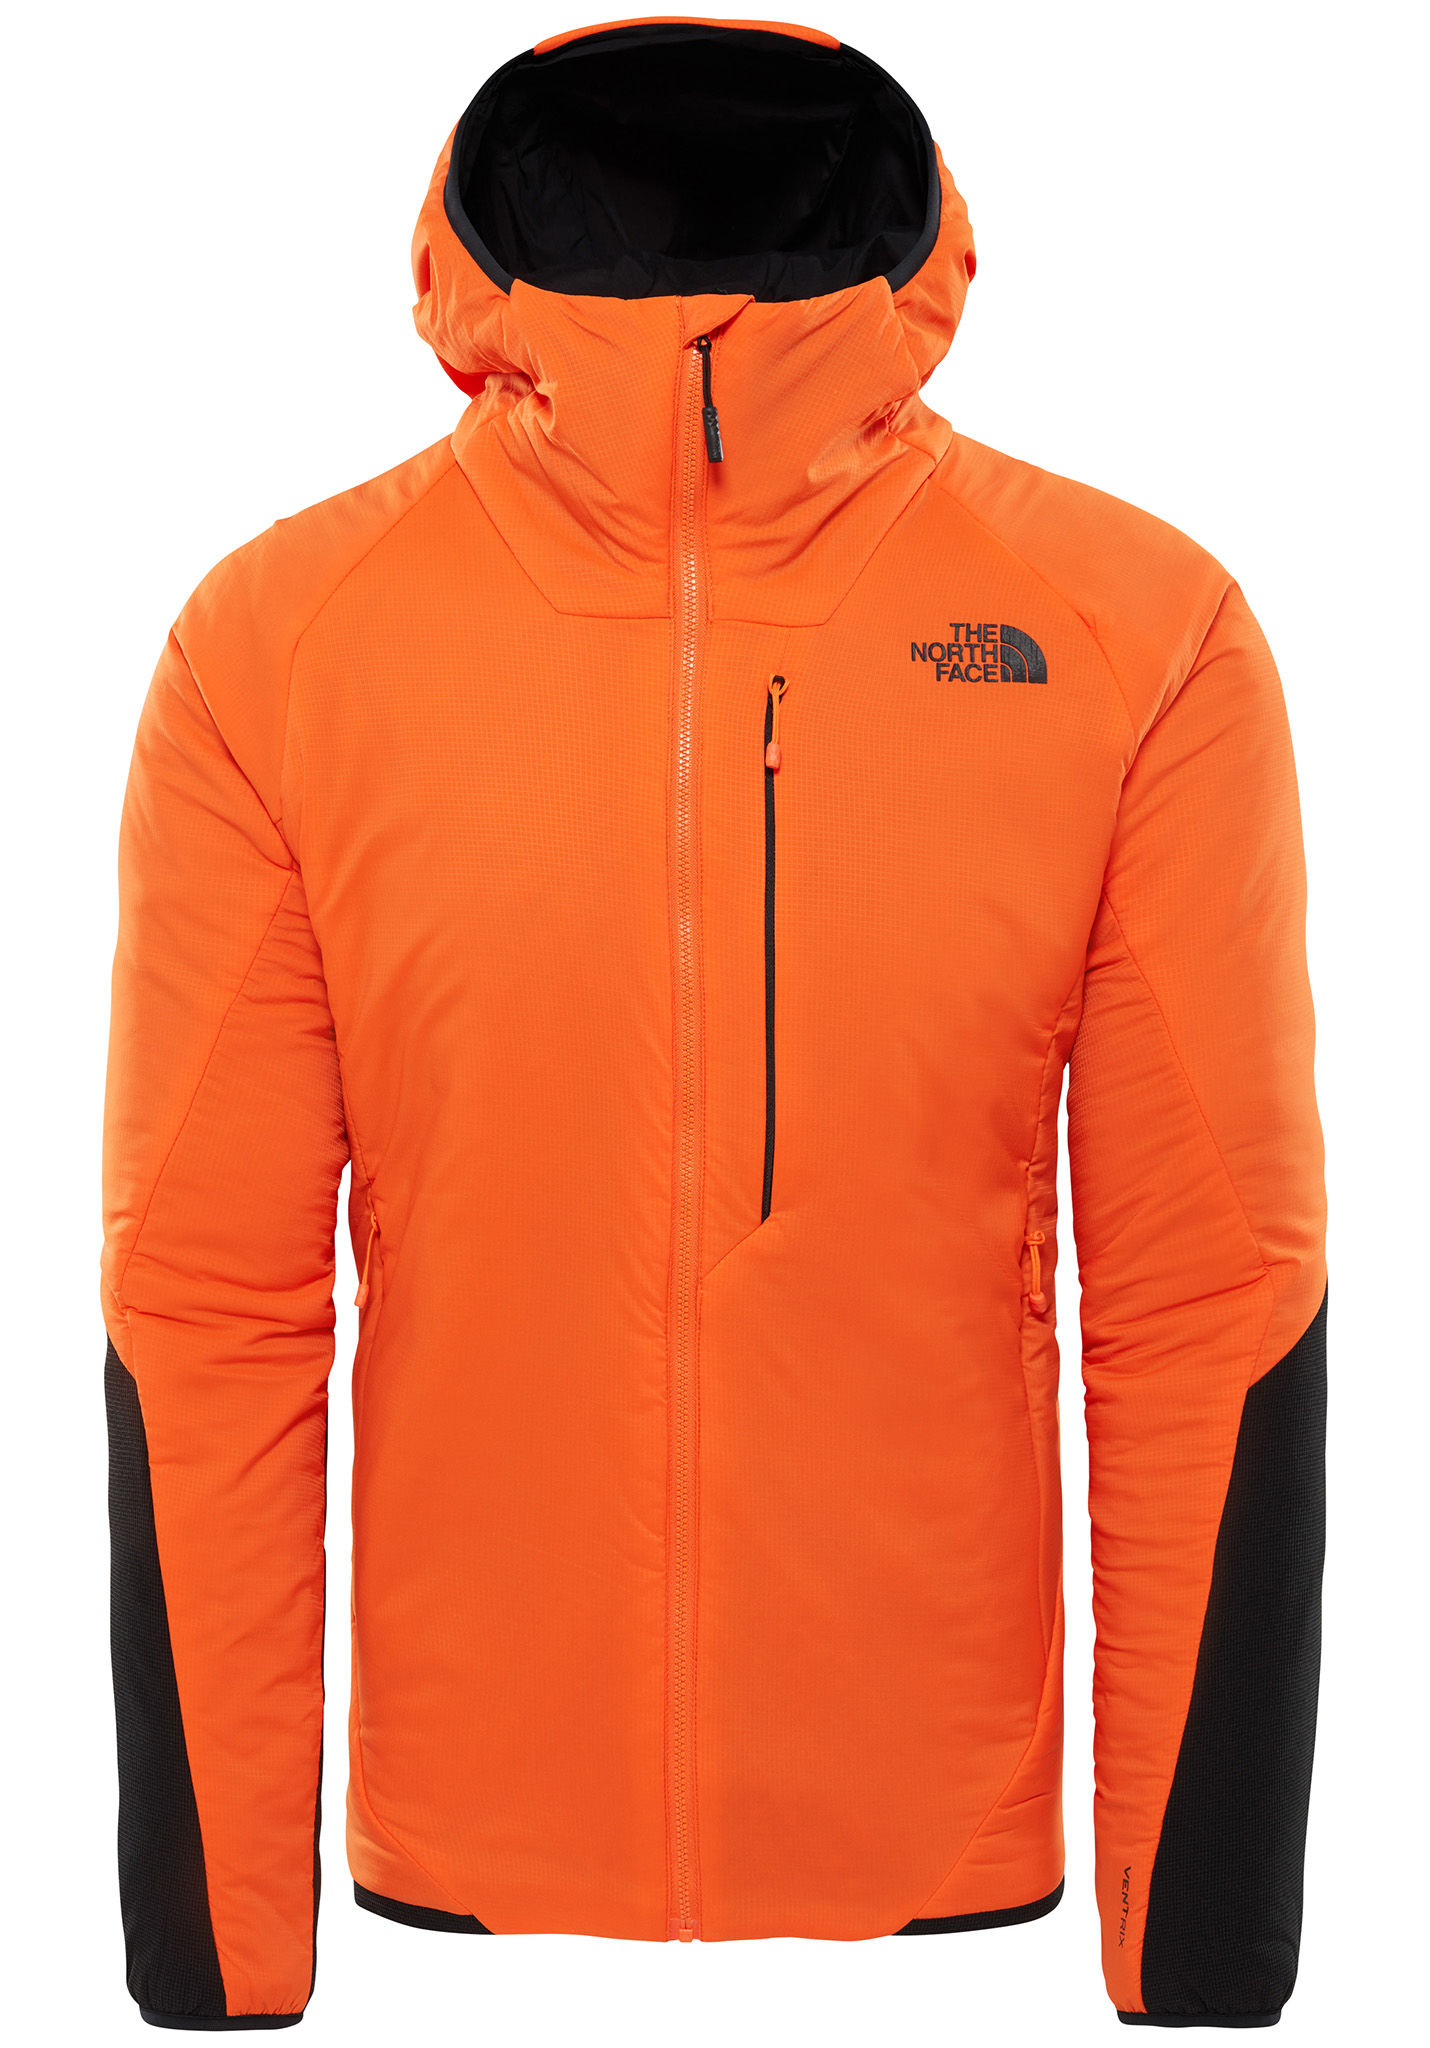 c2f2d5d86e THE NORTH FACE Ventrix - Outdoorjacke für Herren - Orange - Planet Sports